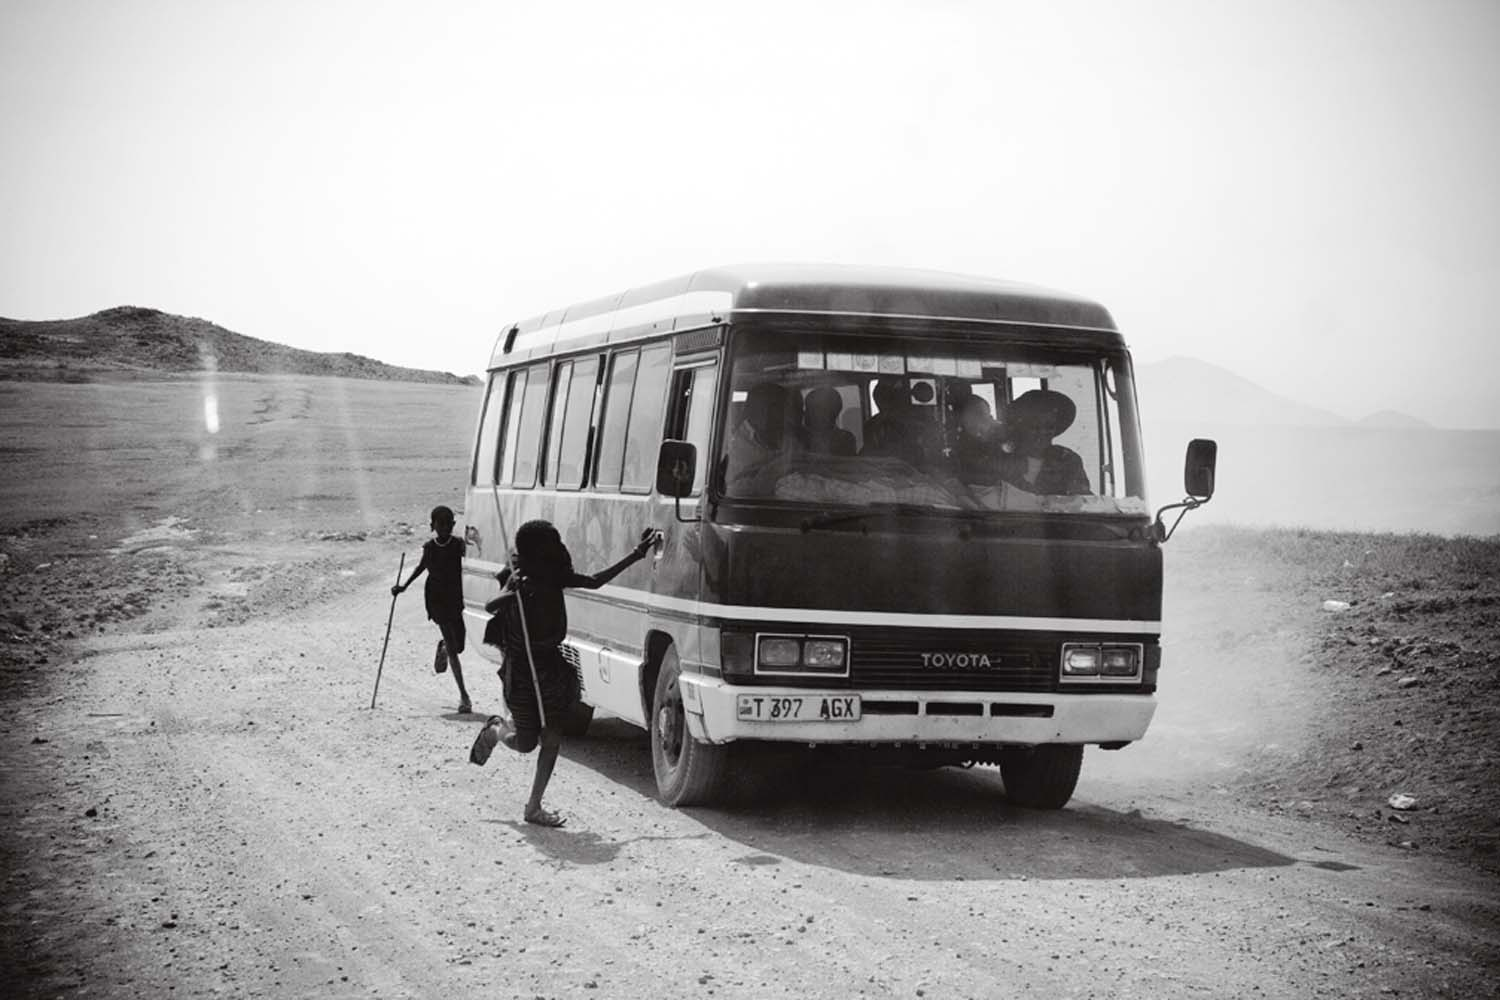 Young Maasai beg for food or change from a bus full of pilgrims on their way to see Reverend Ambilikile Mwasapila, a faith healer in Tanzania's remote district of Loliondo.